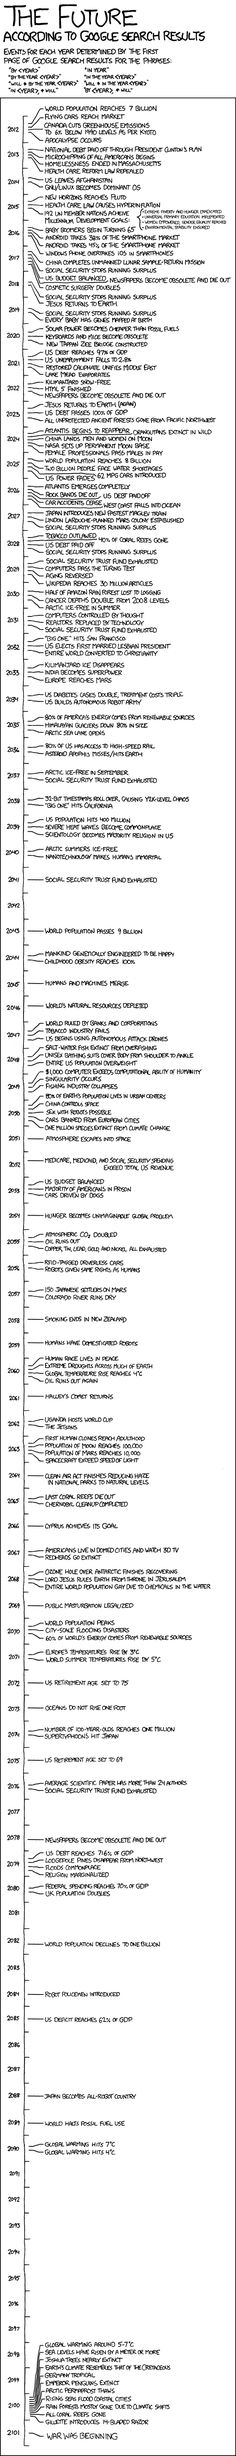 Humorous annual predictions for mankind derived from a Google search algorithm...  Hard to explain actually - check it out!